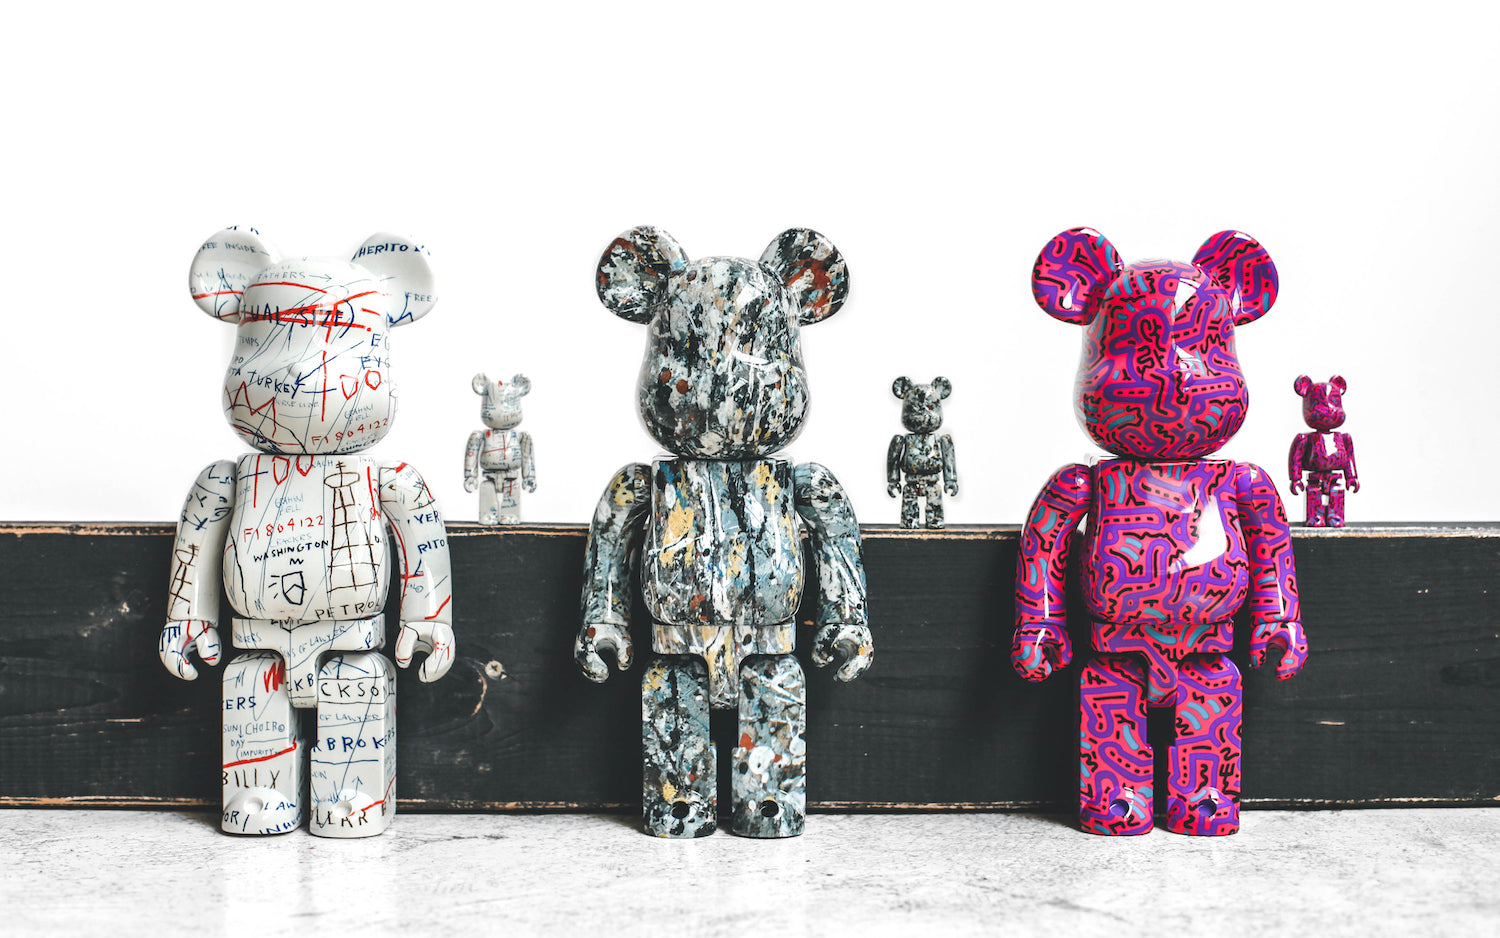 Medicom Toy releases new BE@RBRICKs in collaboration with artists